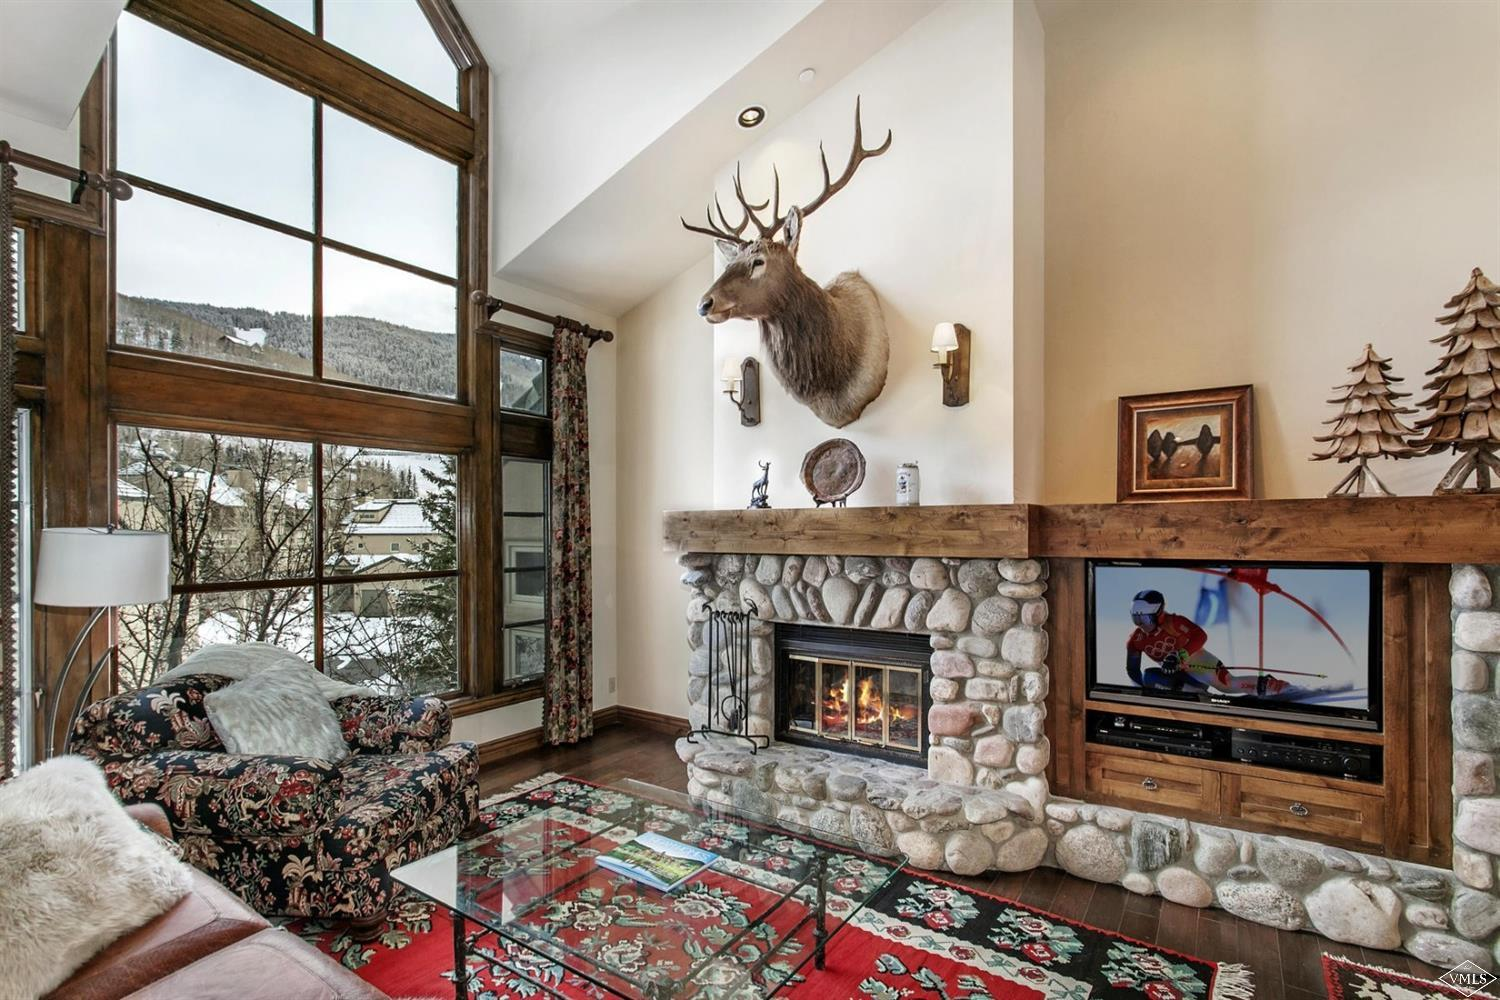 385 Offerson Road, M-4, Beaver Creek, CO 81620 Property Photo - Beaver Creek, CO real estate listing